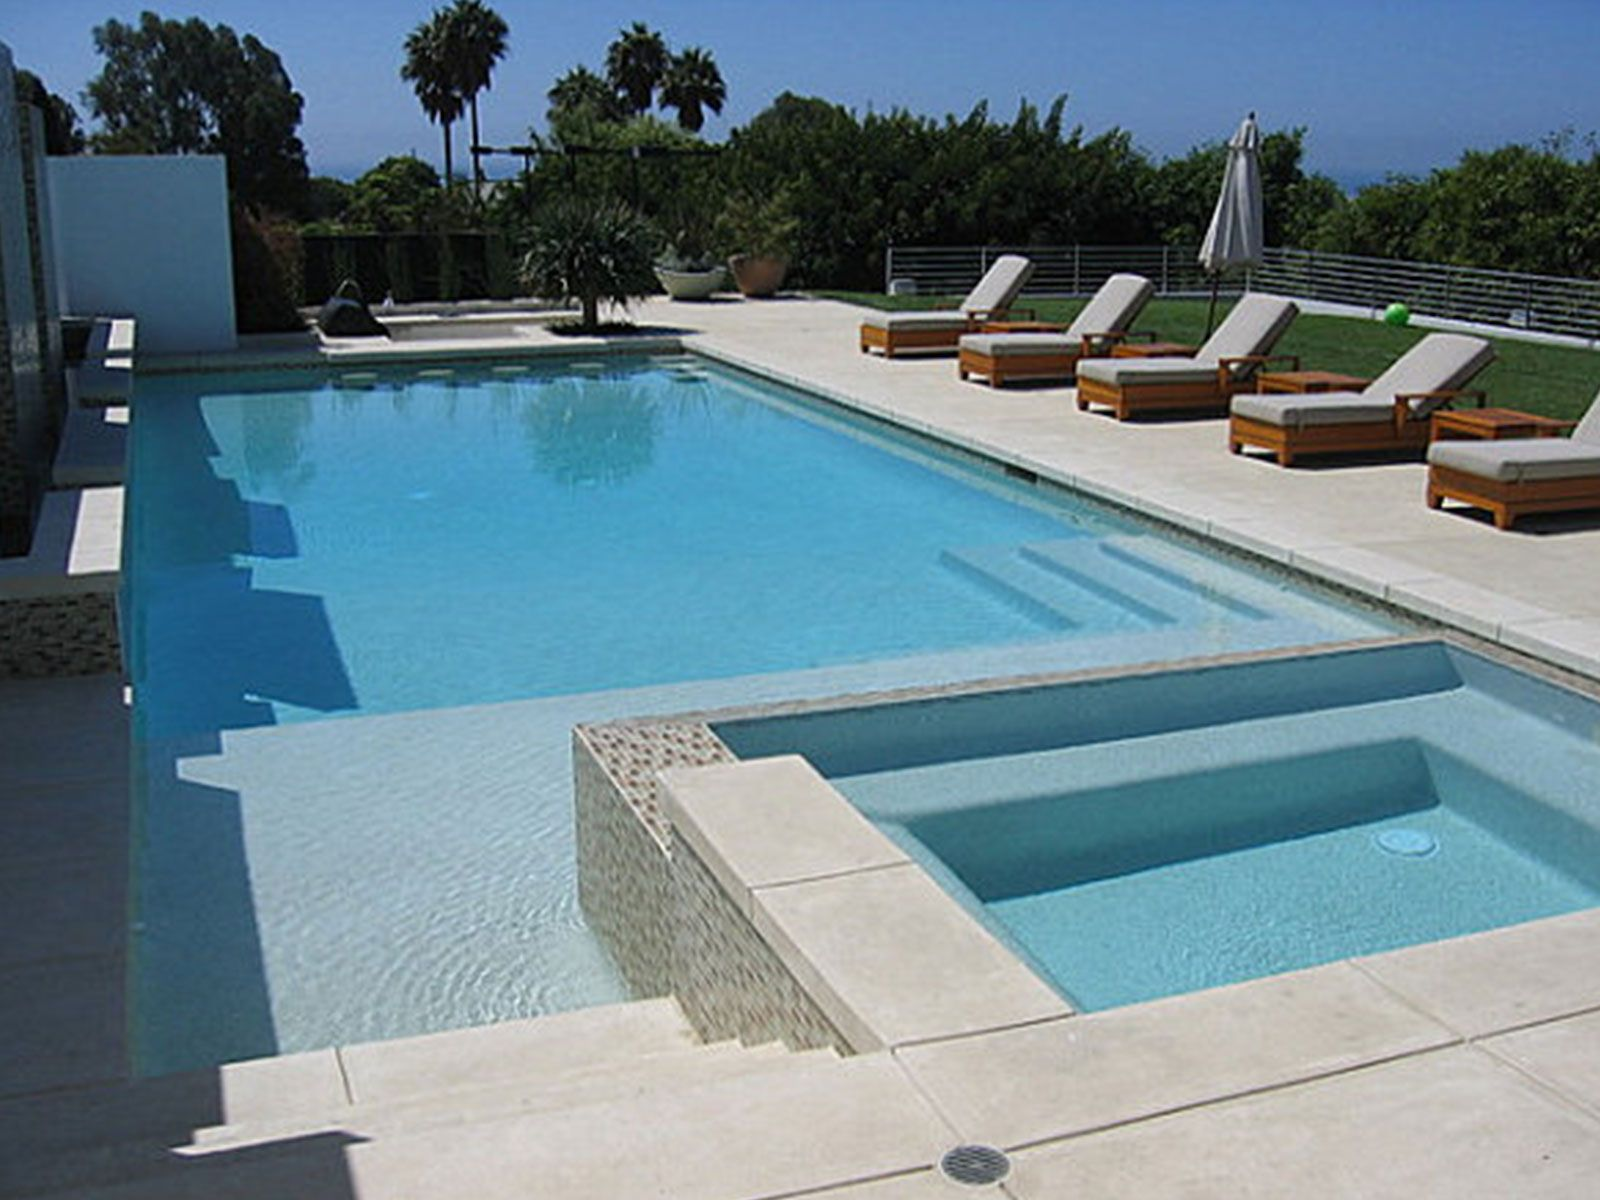 Simple swimming pool design image modern creative swimming for Best house designs with pool